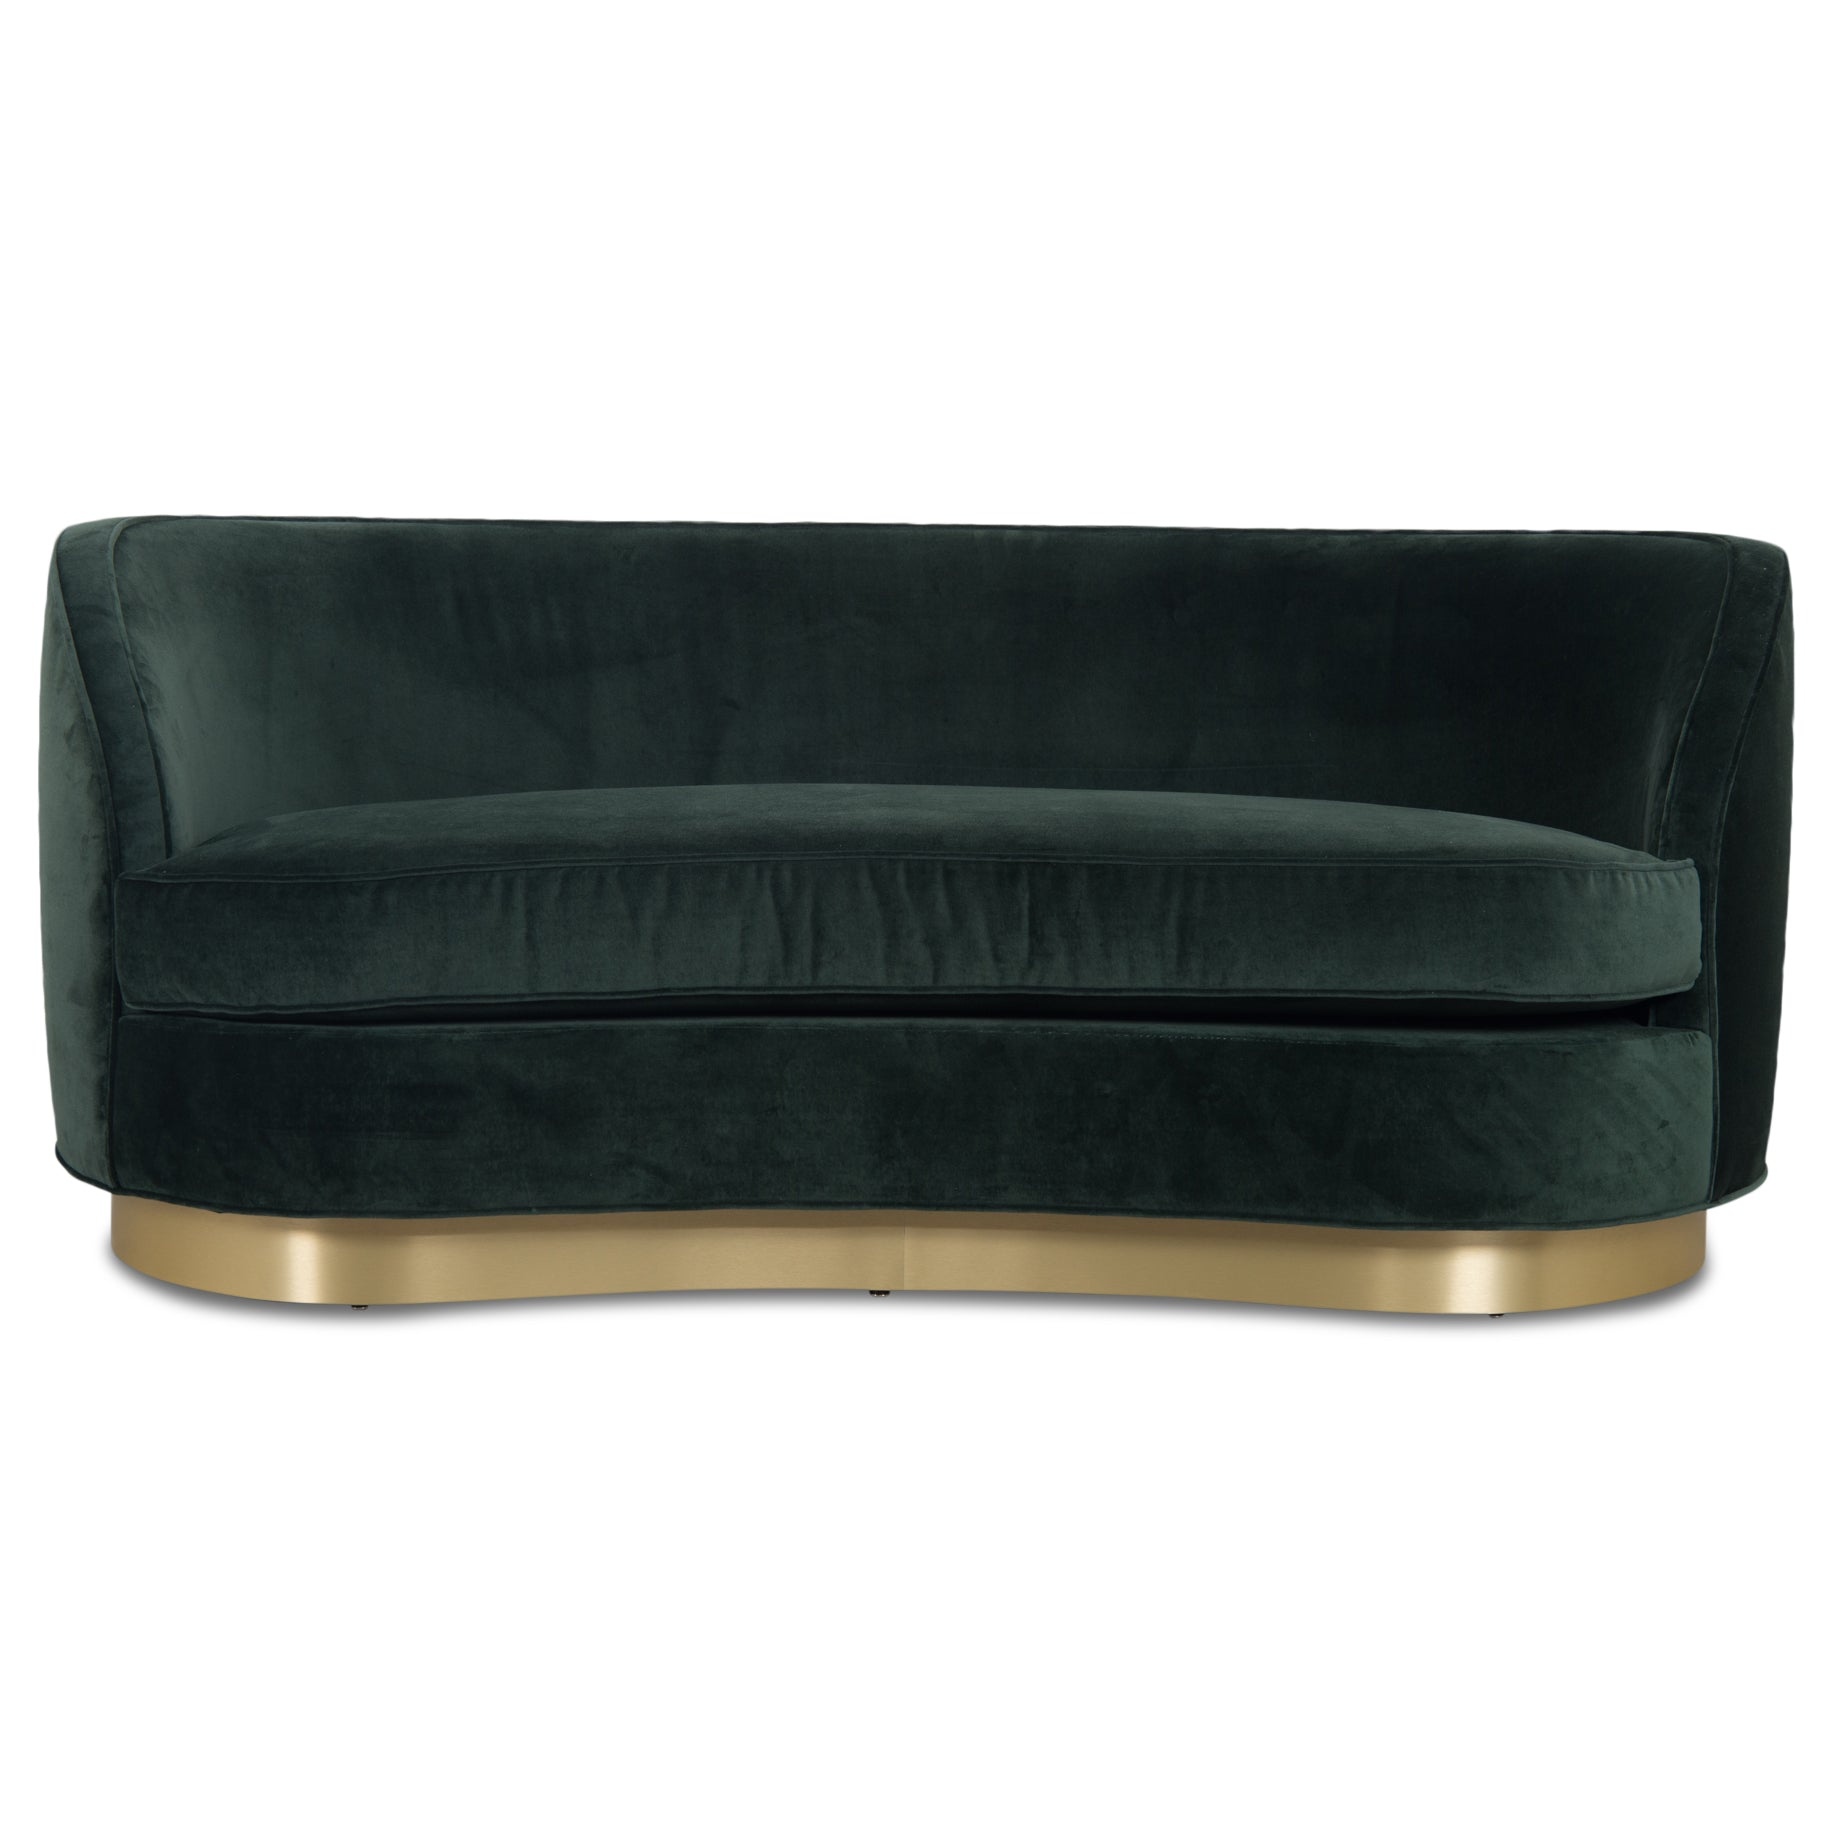 St. Tropez 2 Petite Sofa with Toe Kick in Velvet - ModShop1.com